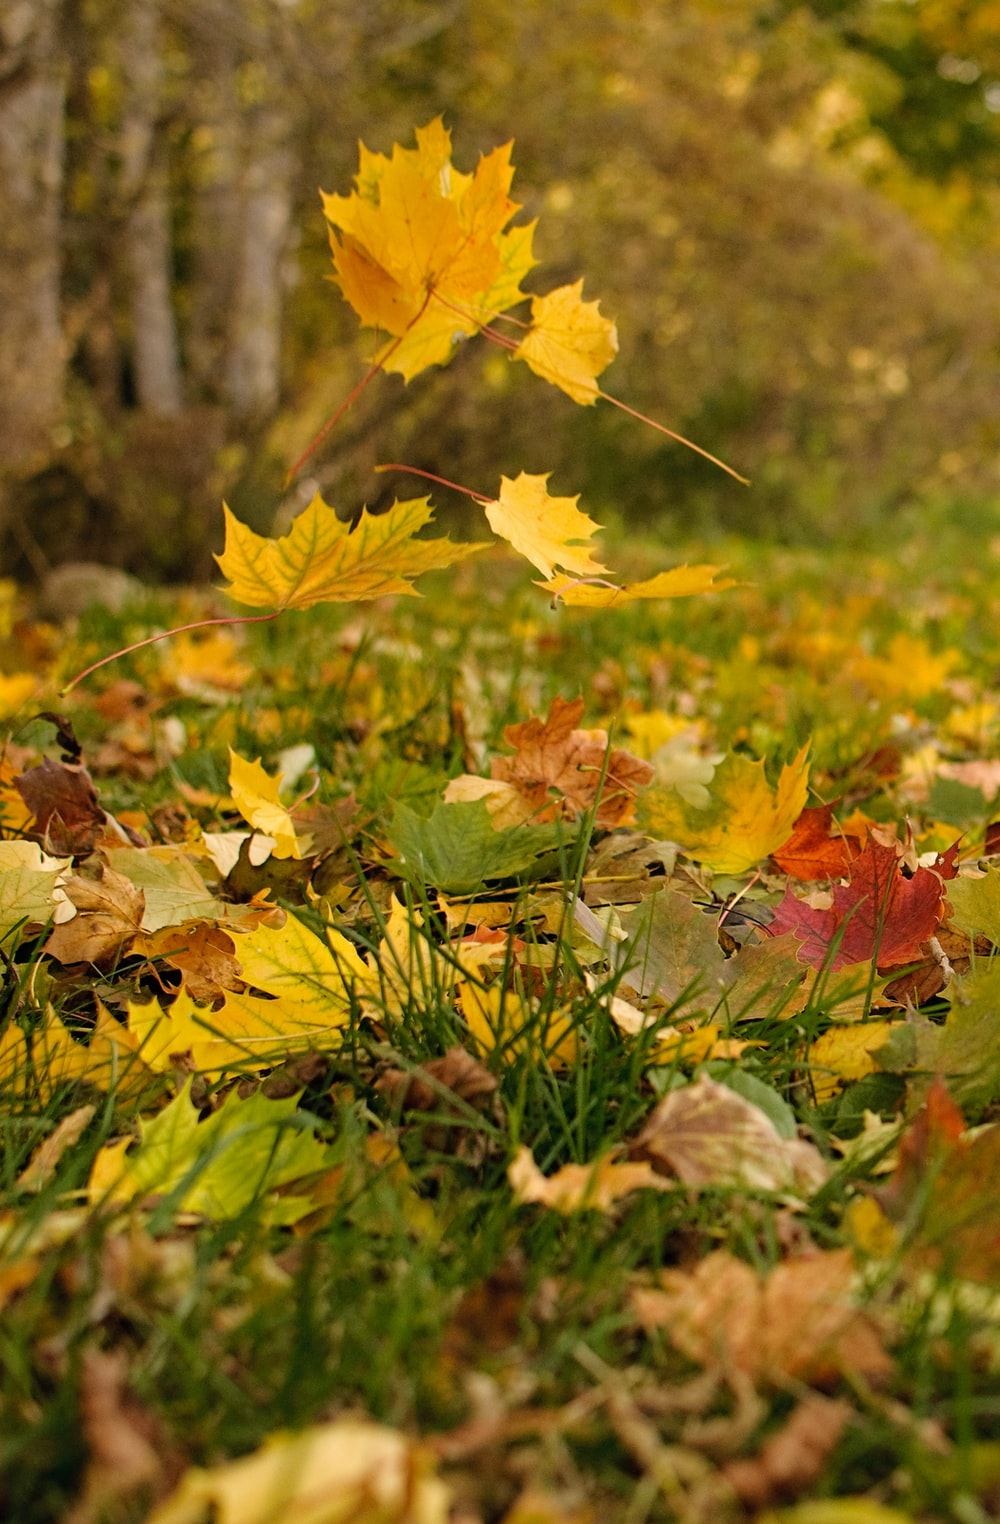 brown and yellow maple leaves on green grass during daytime